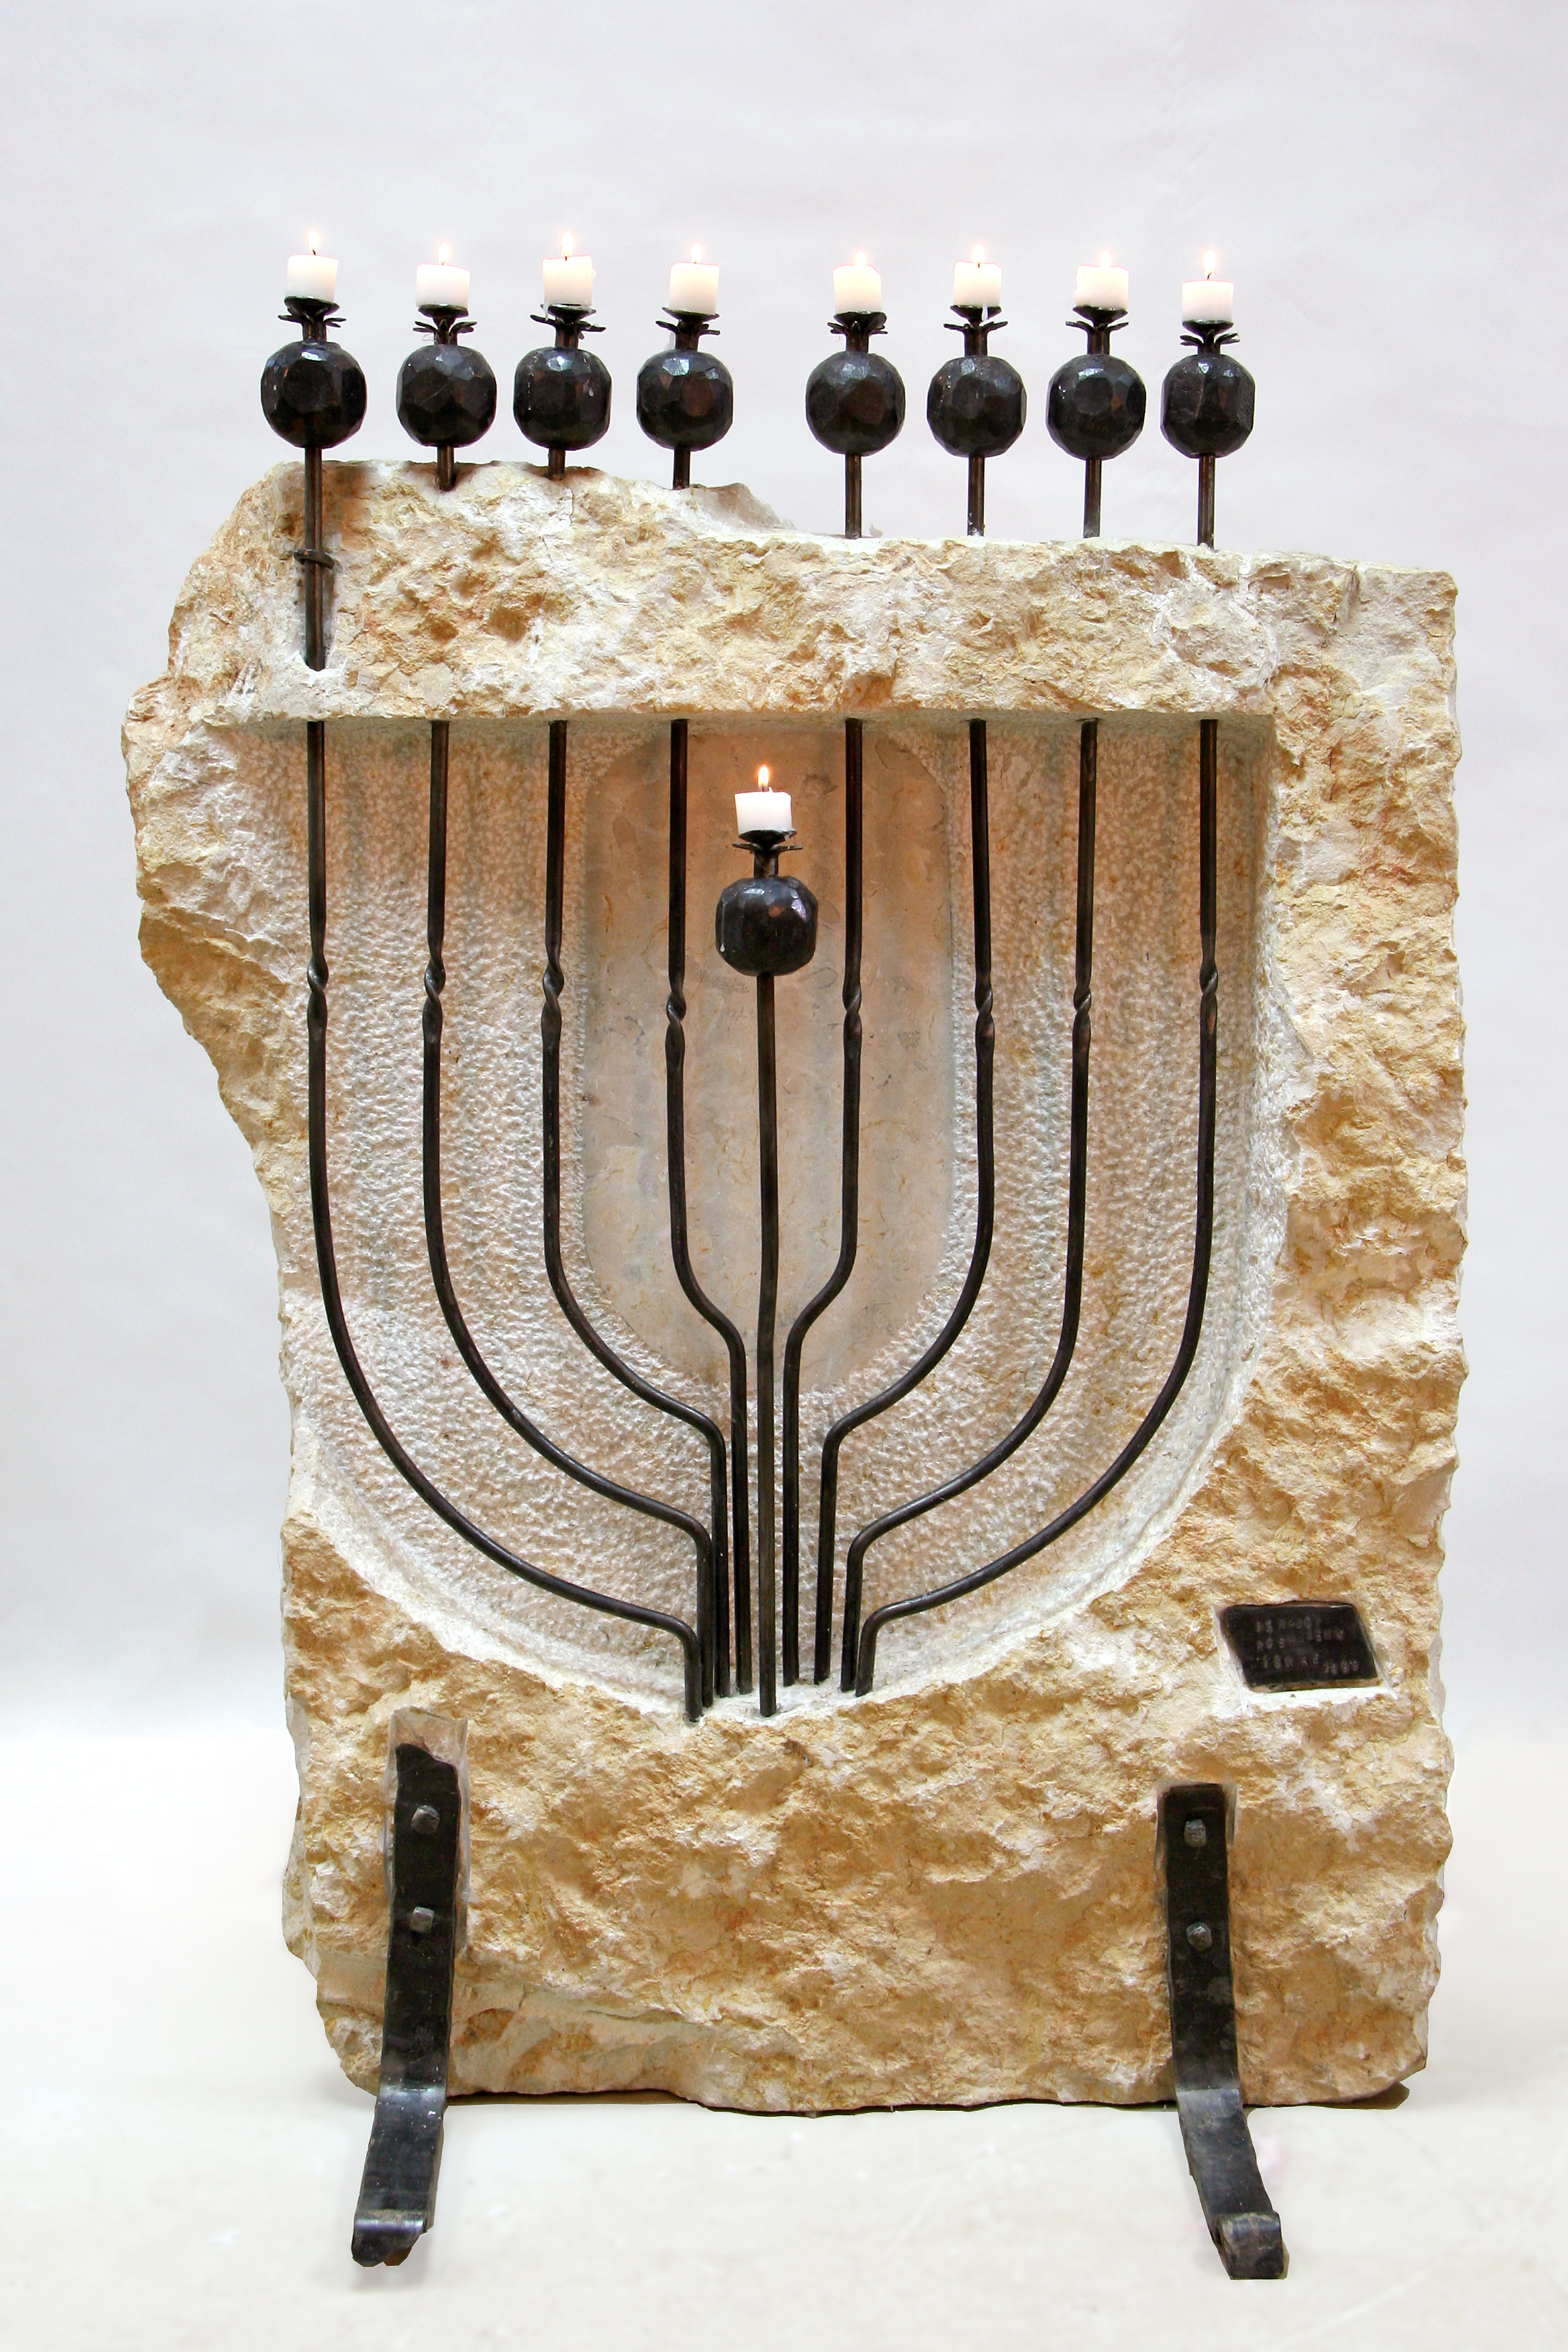 'Rimonim' - Pomegranate Hanukkah Menorah of Iron & Jerusalem Stone